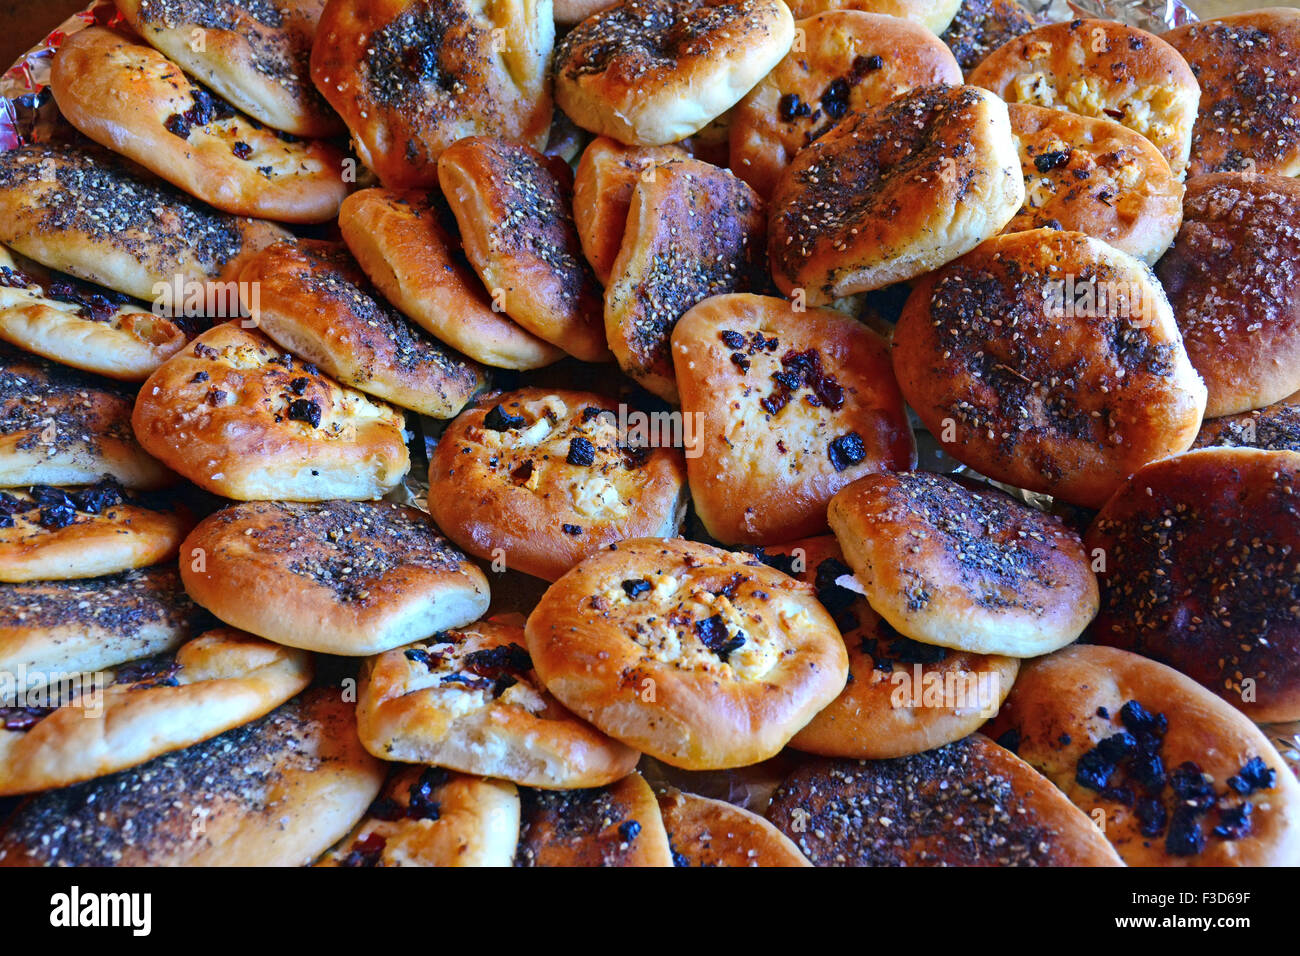 North African pastries - Stock Image